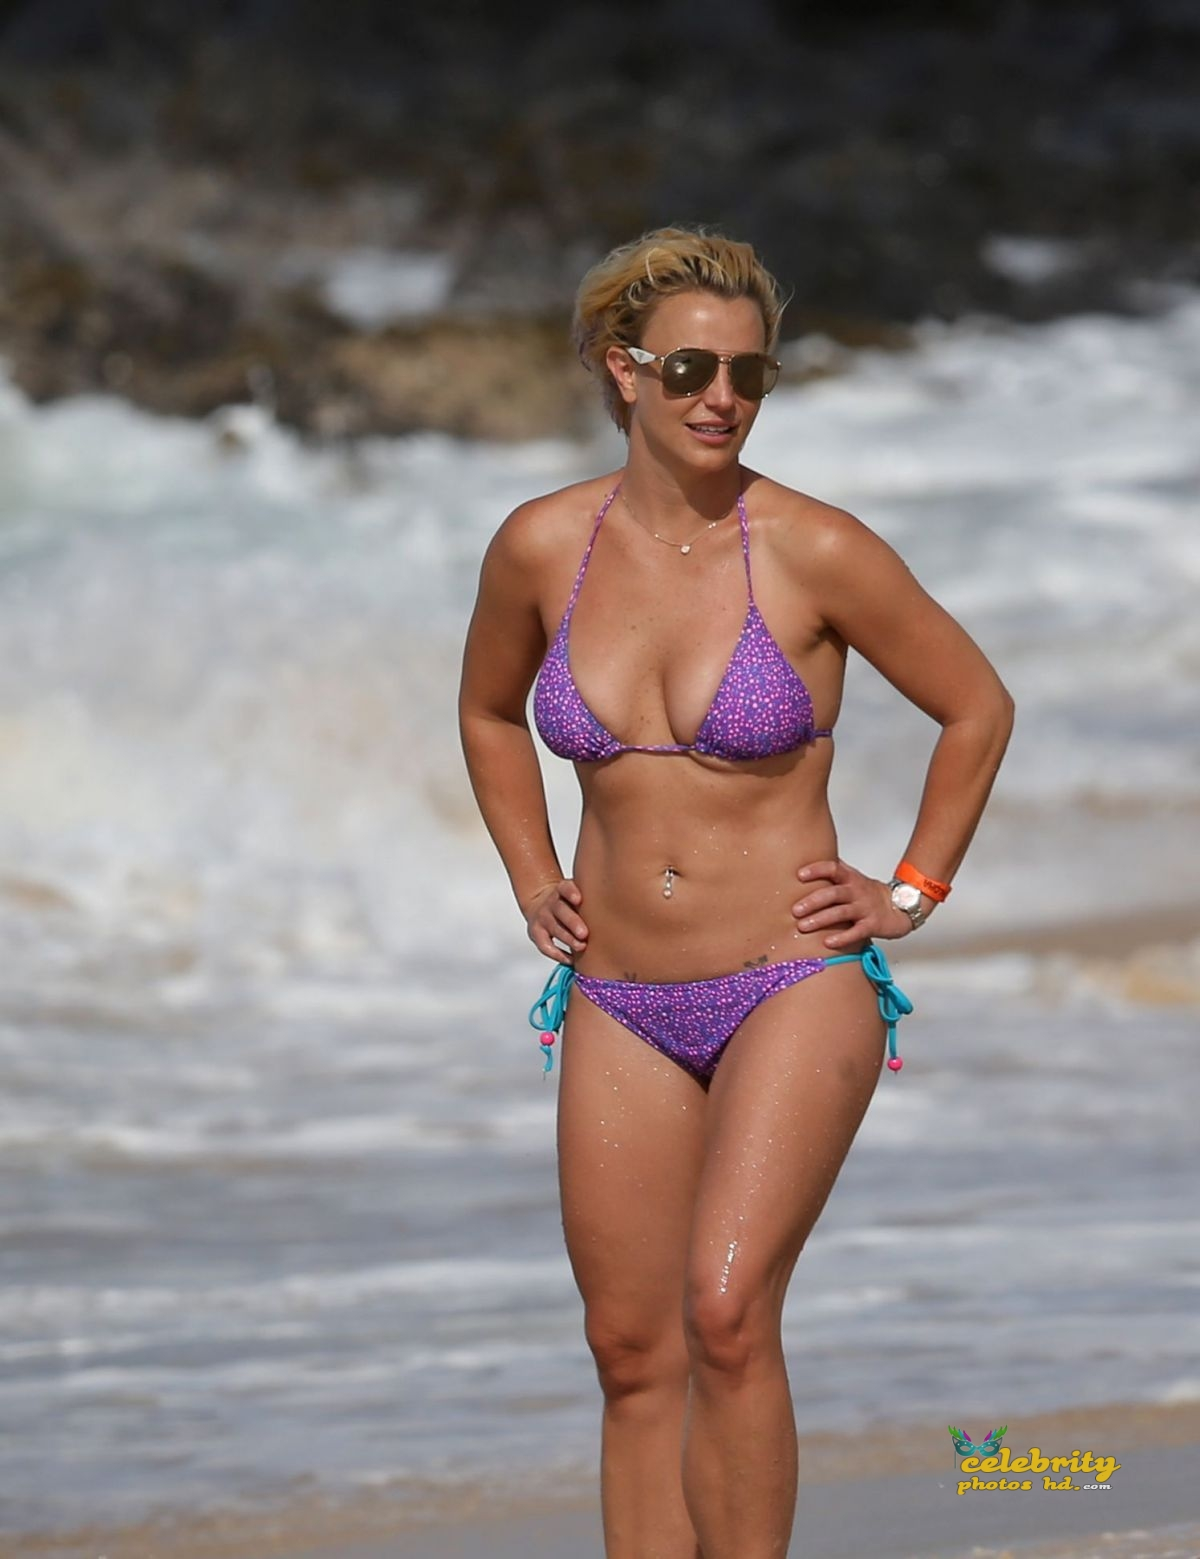 britney-spears-in-bikini-at-a-beach-in-hawaii-07-23-2015_18